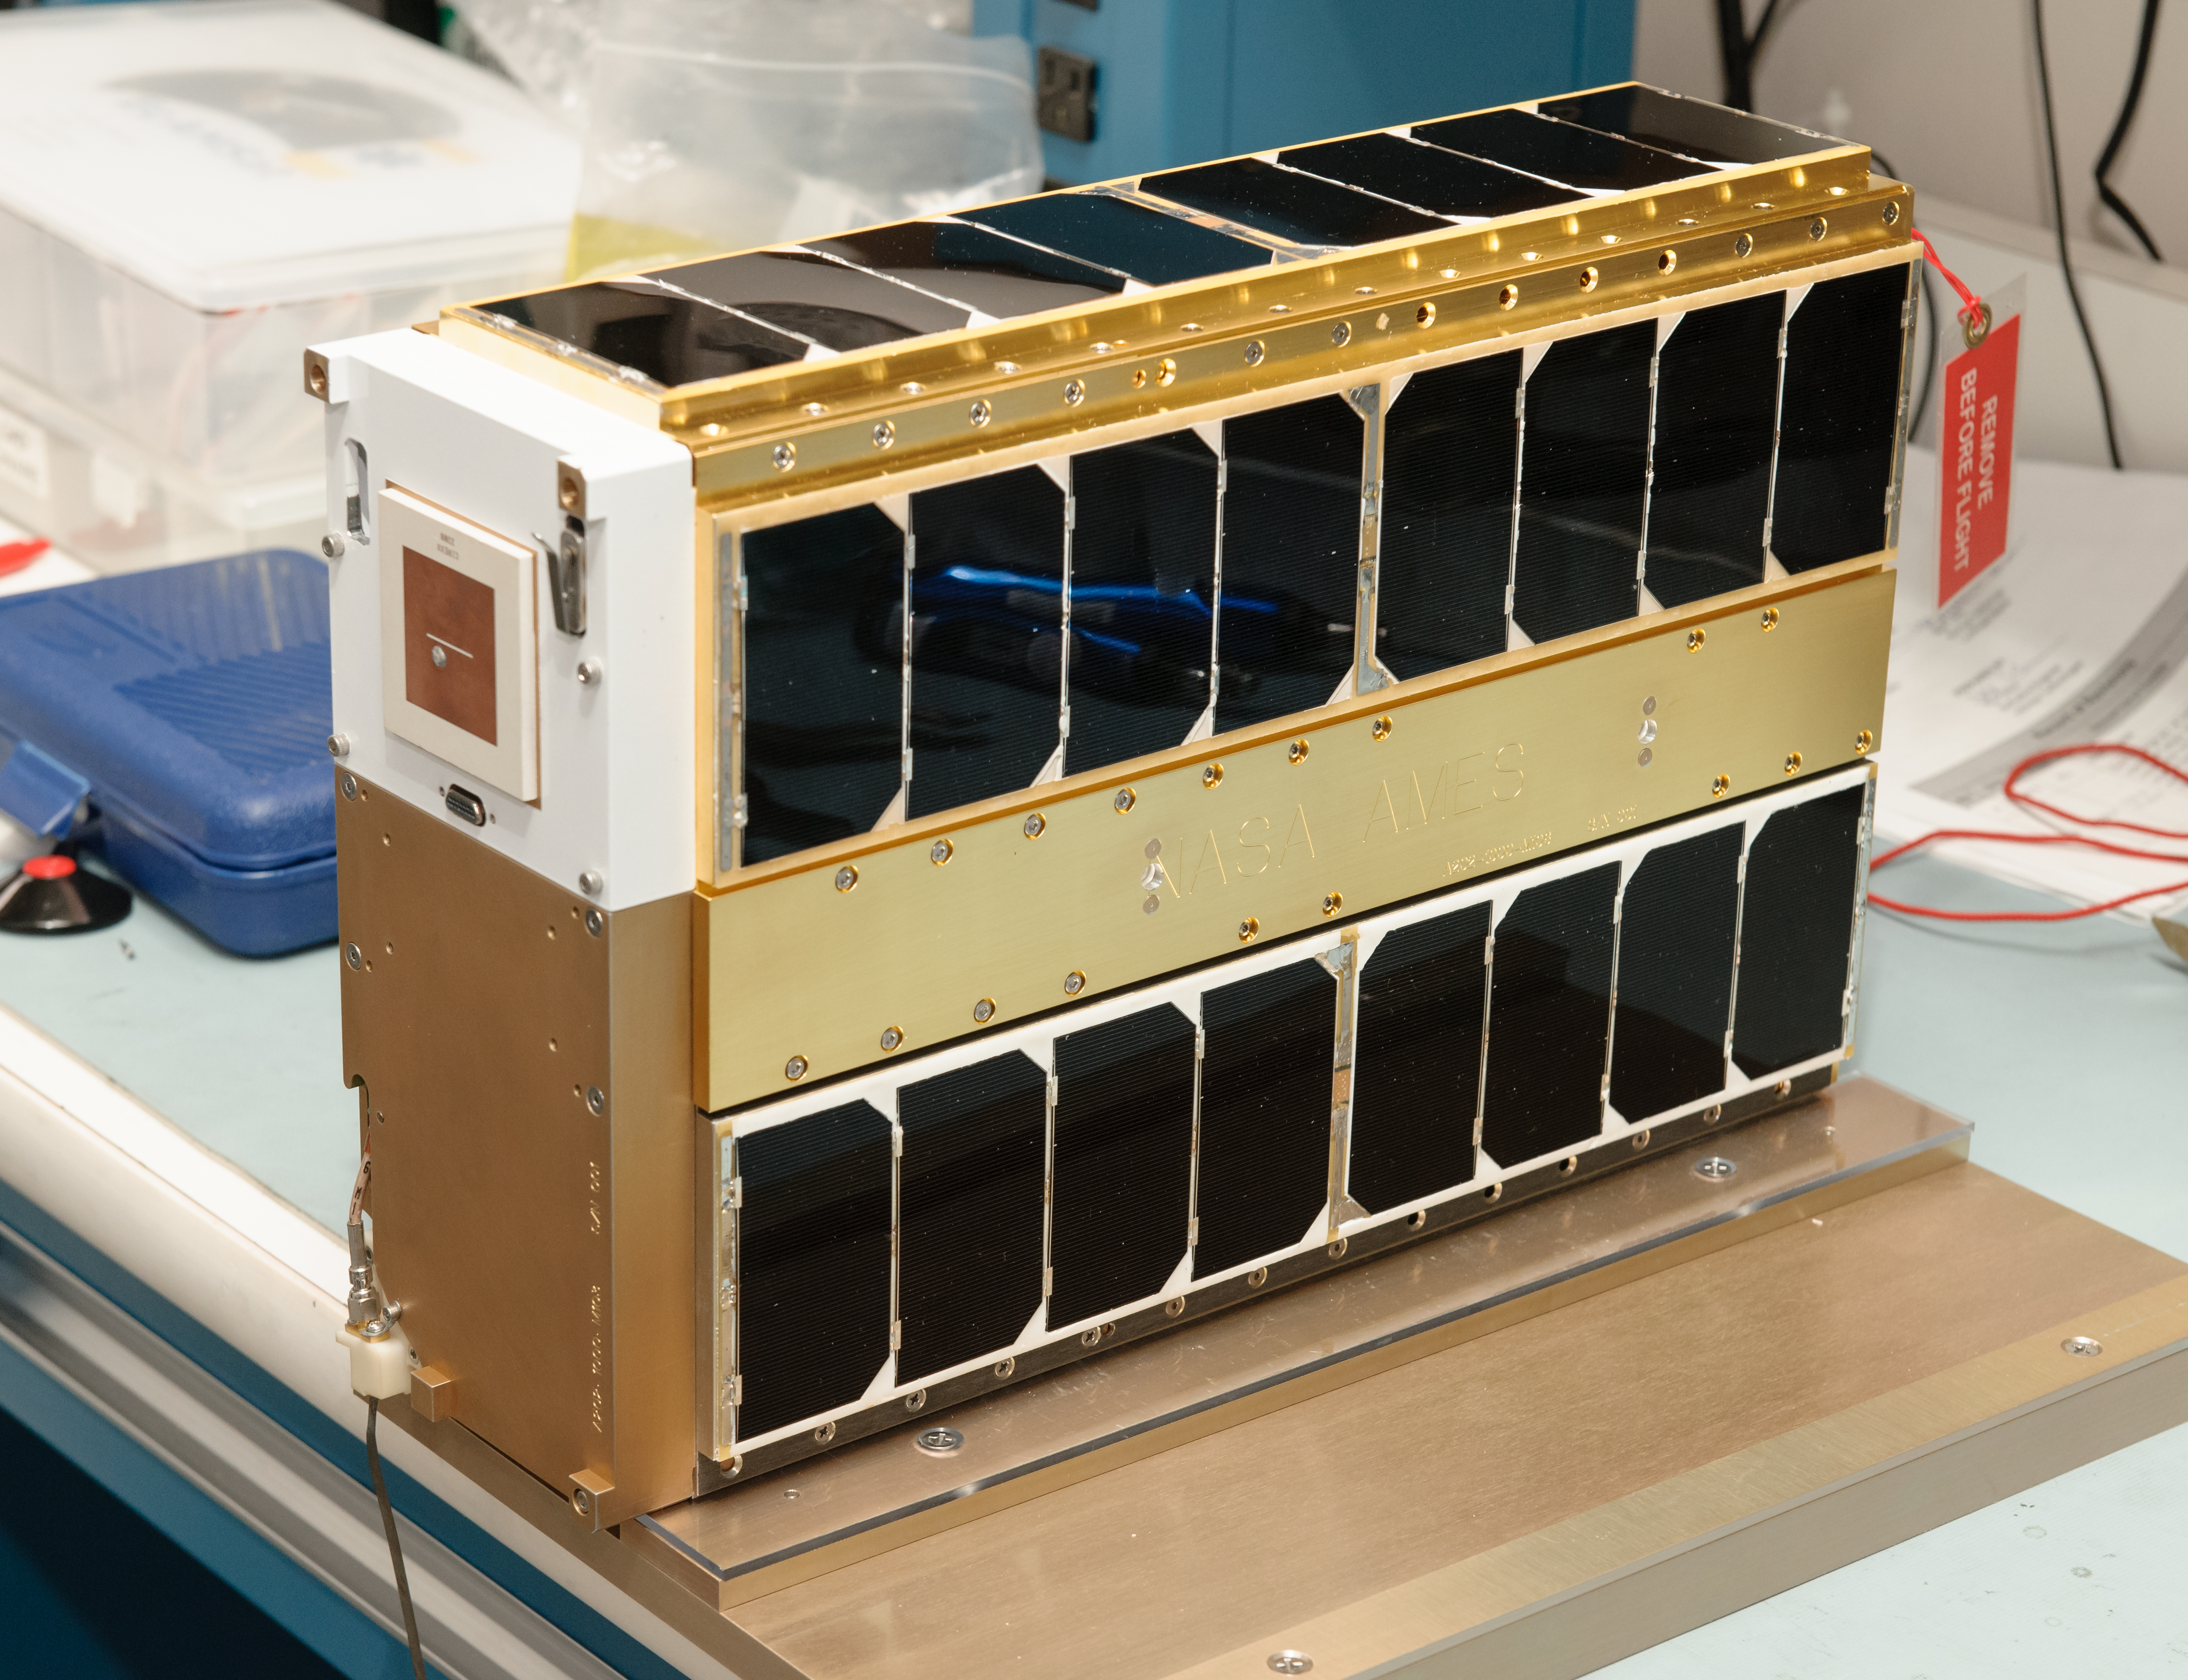 EcAMSat, which uses nanosatellite technology demonstrated on previous Ames missions, is an entirely autonomous satellite (about as big as a large box of cereal)